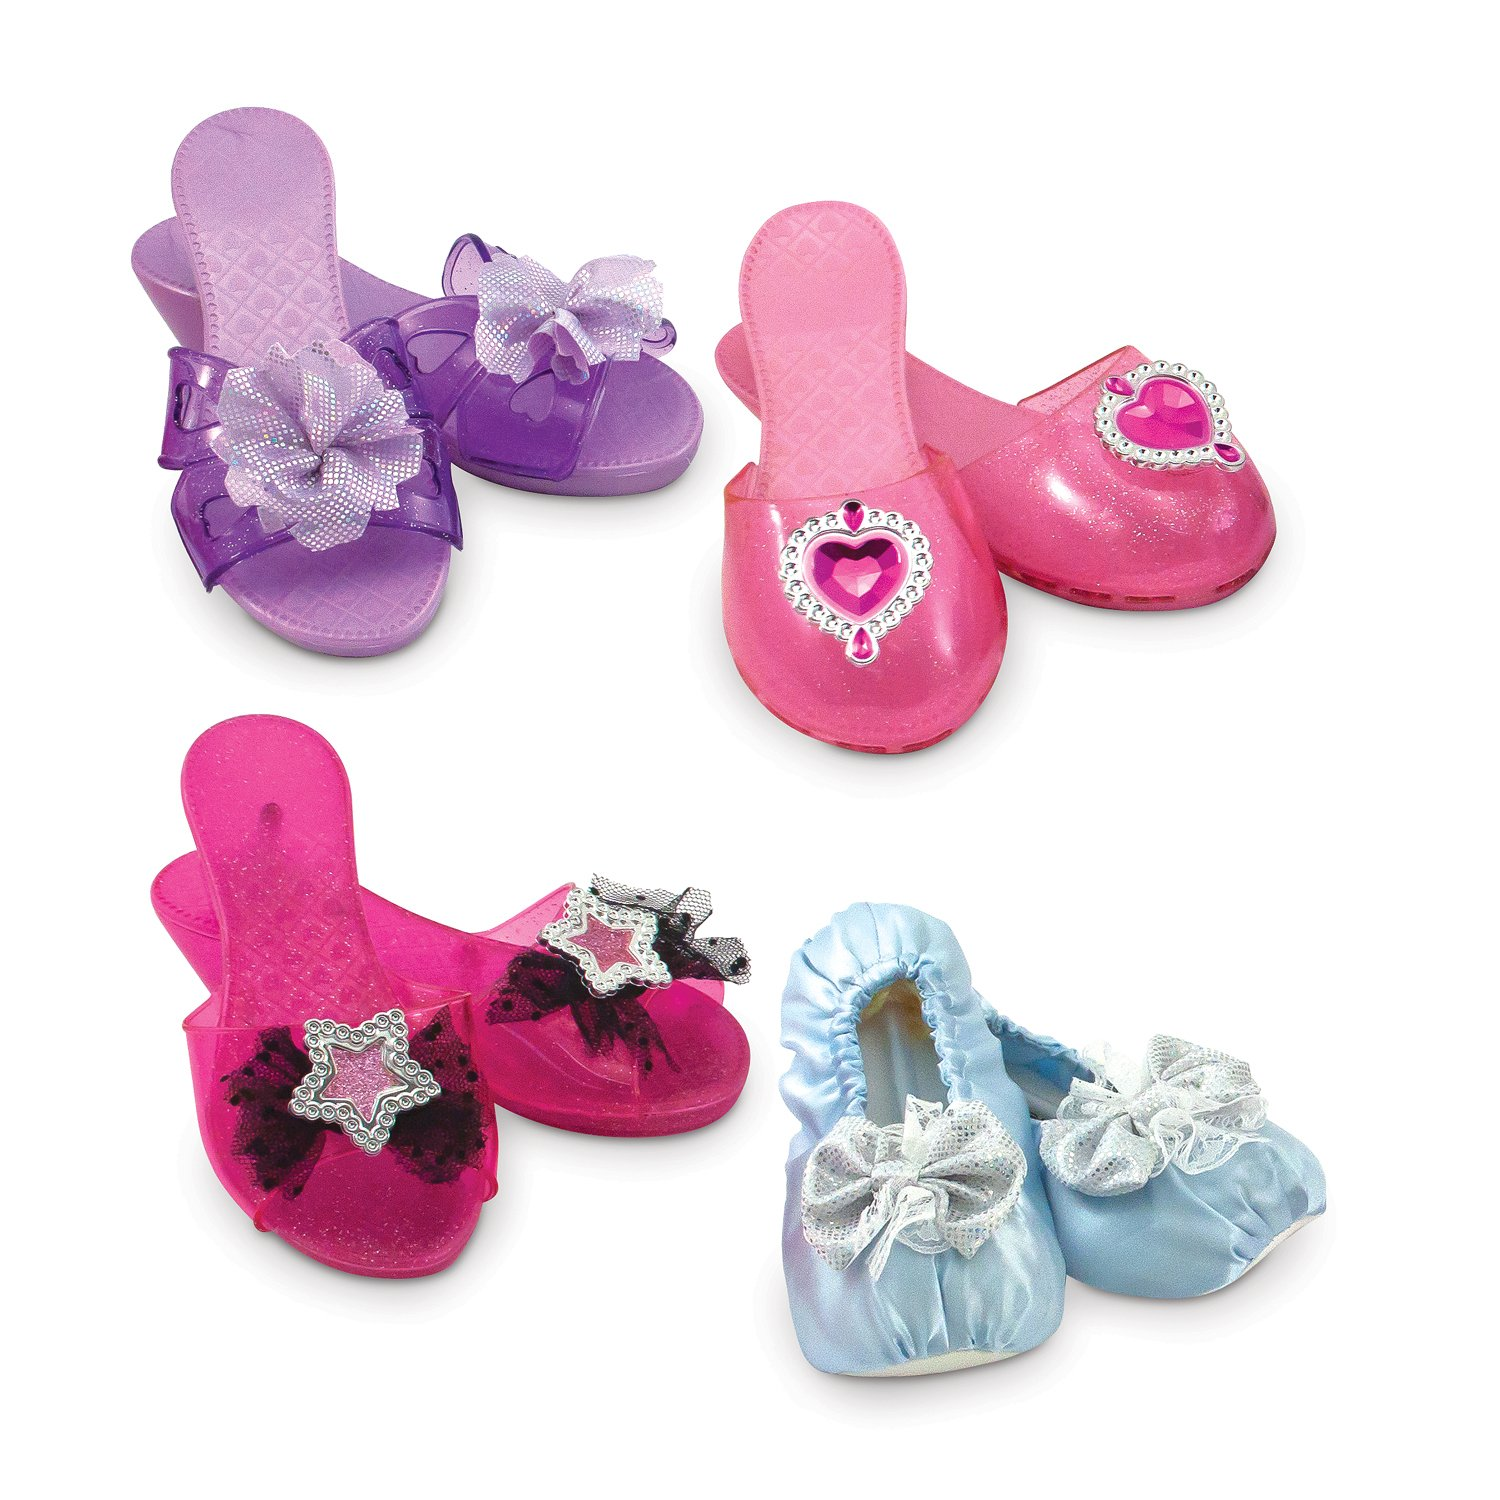 Dress Up Pretend Play Images On: Kids Dress Up Shoes Girl Pretend Play Set 4 Pair Princess